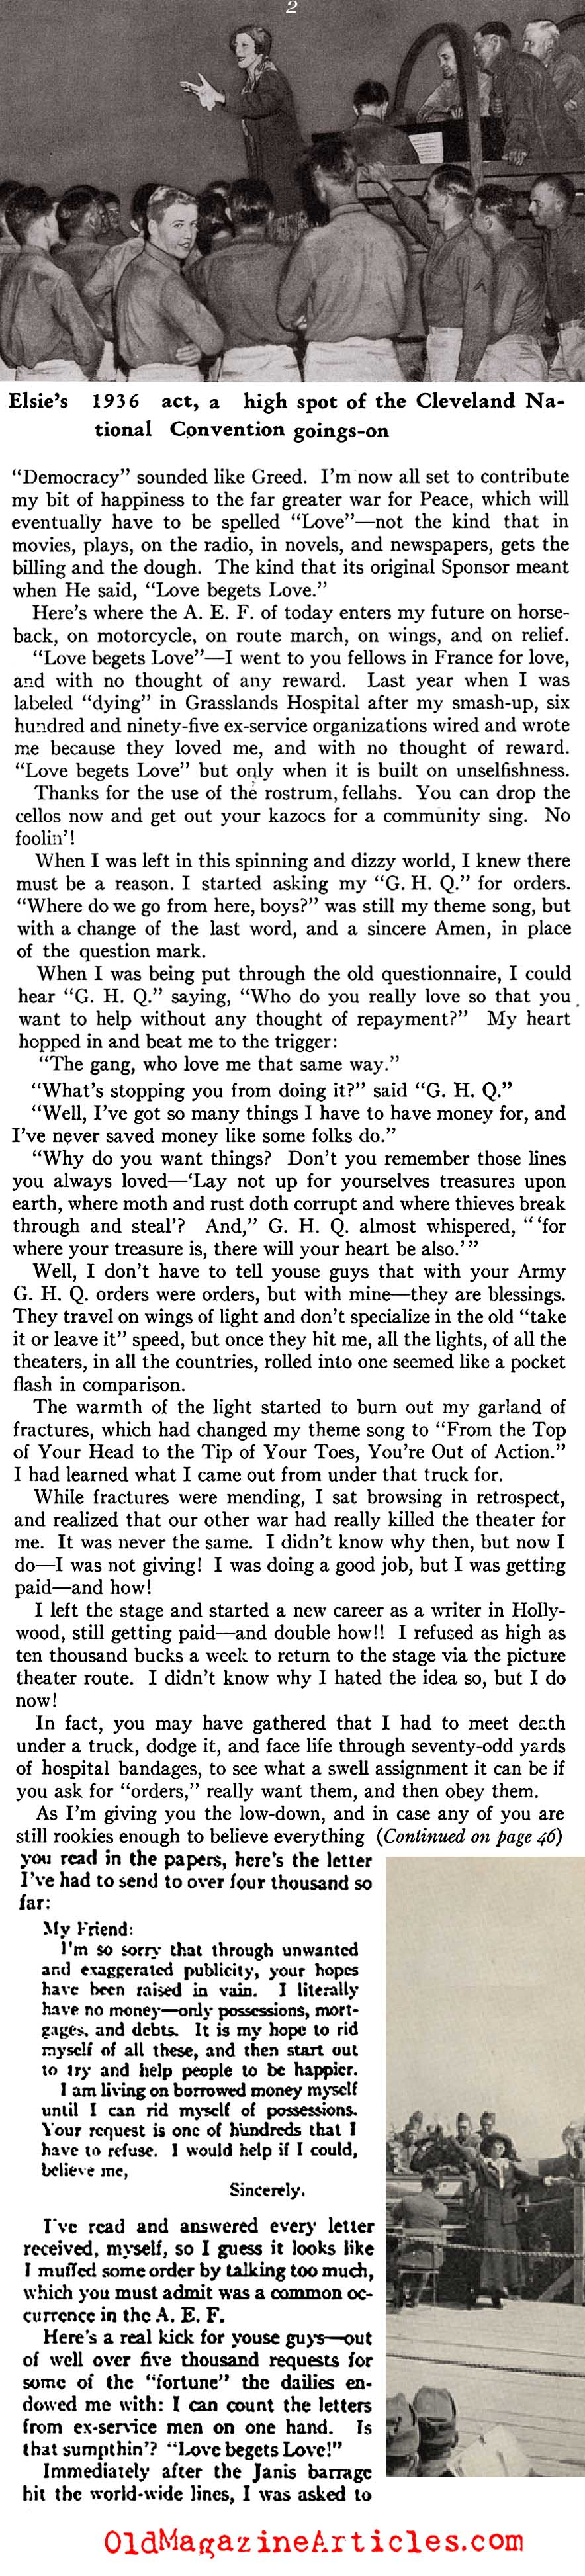 Elsie Janis Entertained the Doughboys  (American Legion Monthly, 1936)